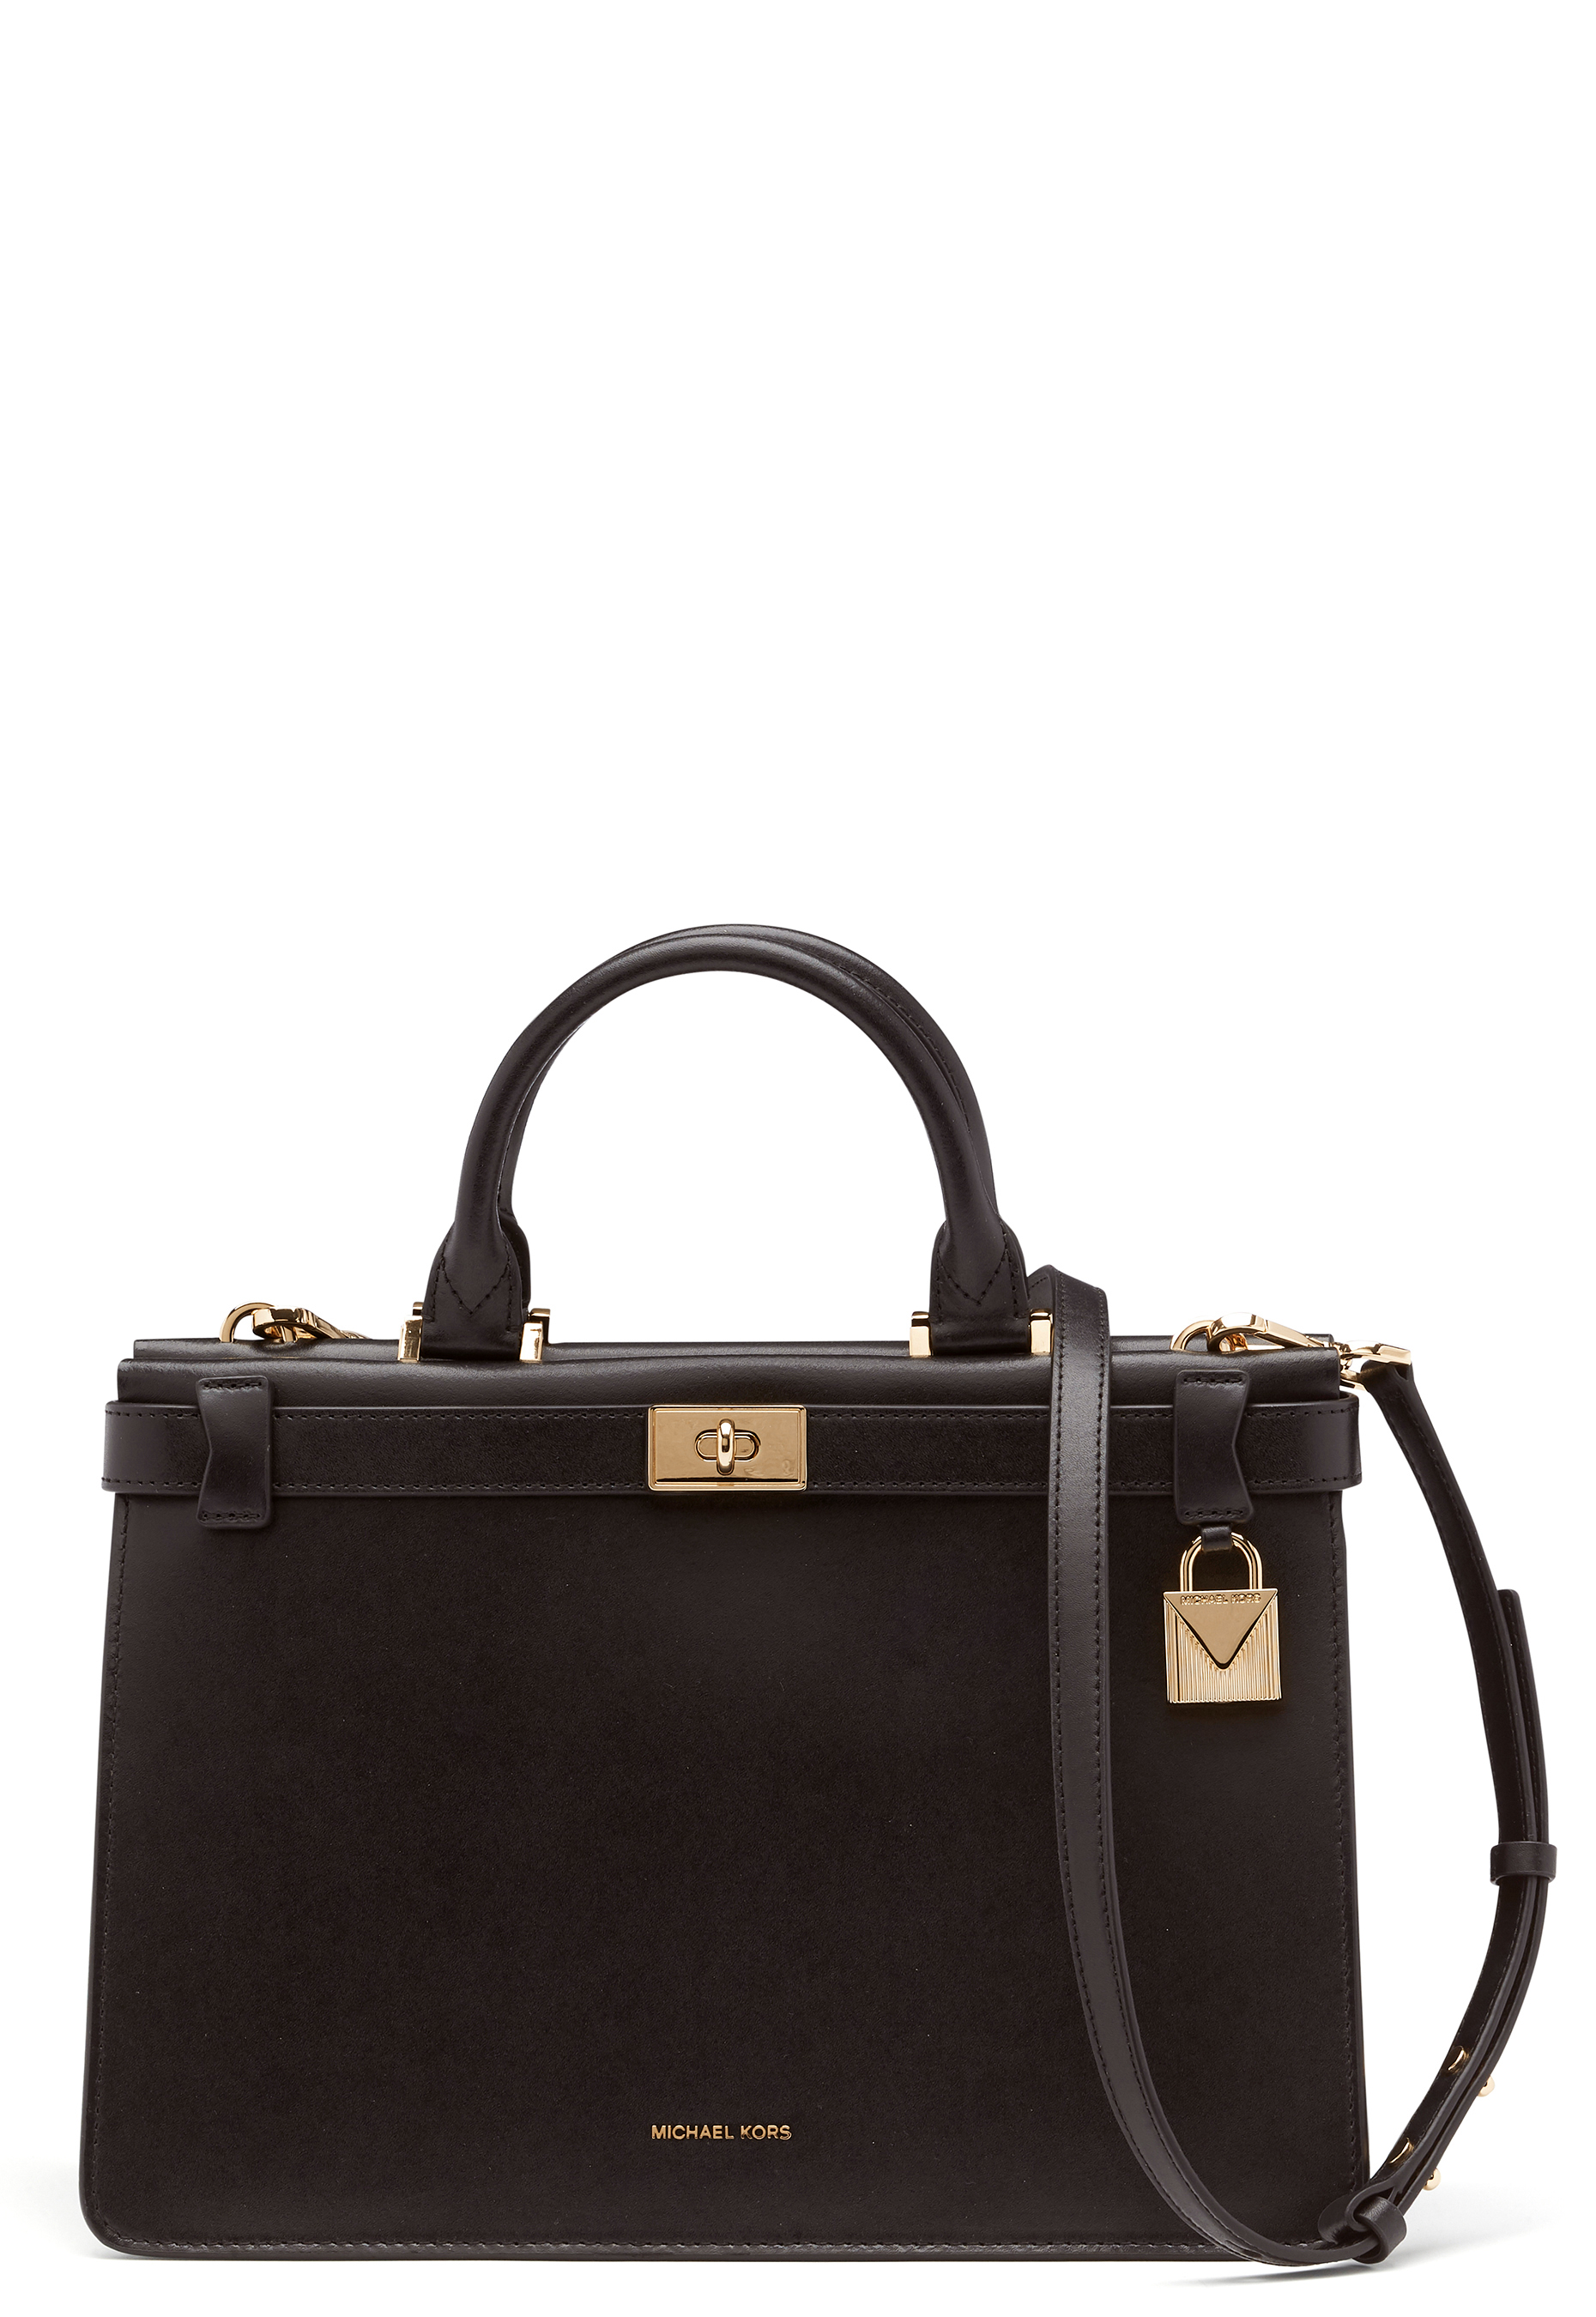 93762a13b449 Michael Michael Kors Tatiana Medium Tote Black - Bubbleroom